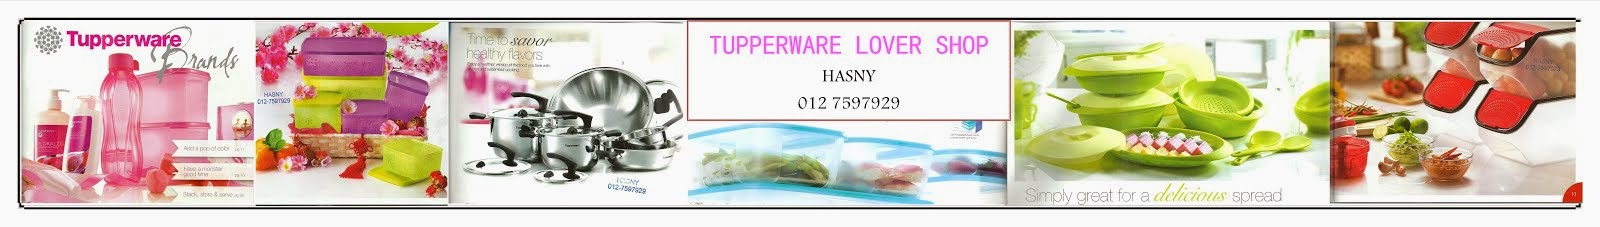 Tupperware Lover Shop